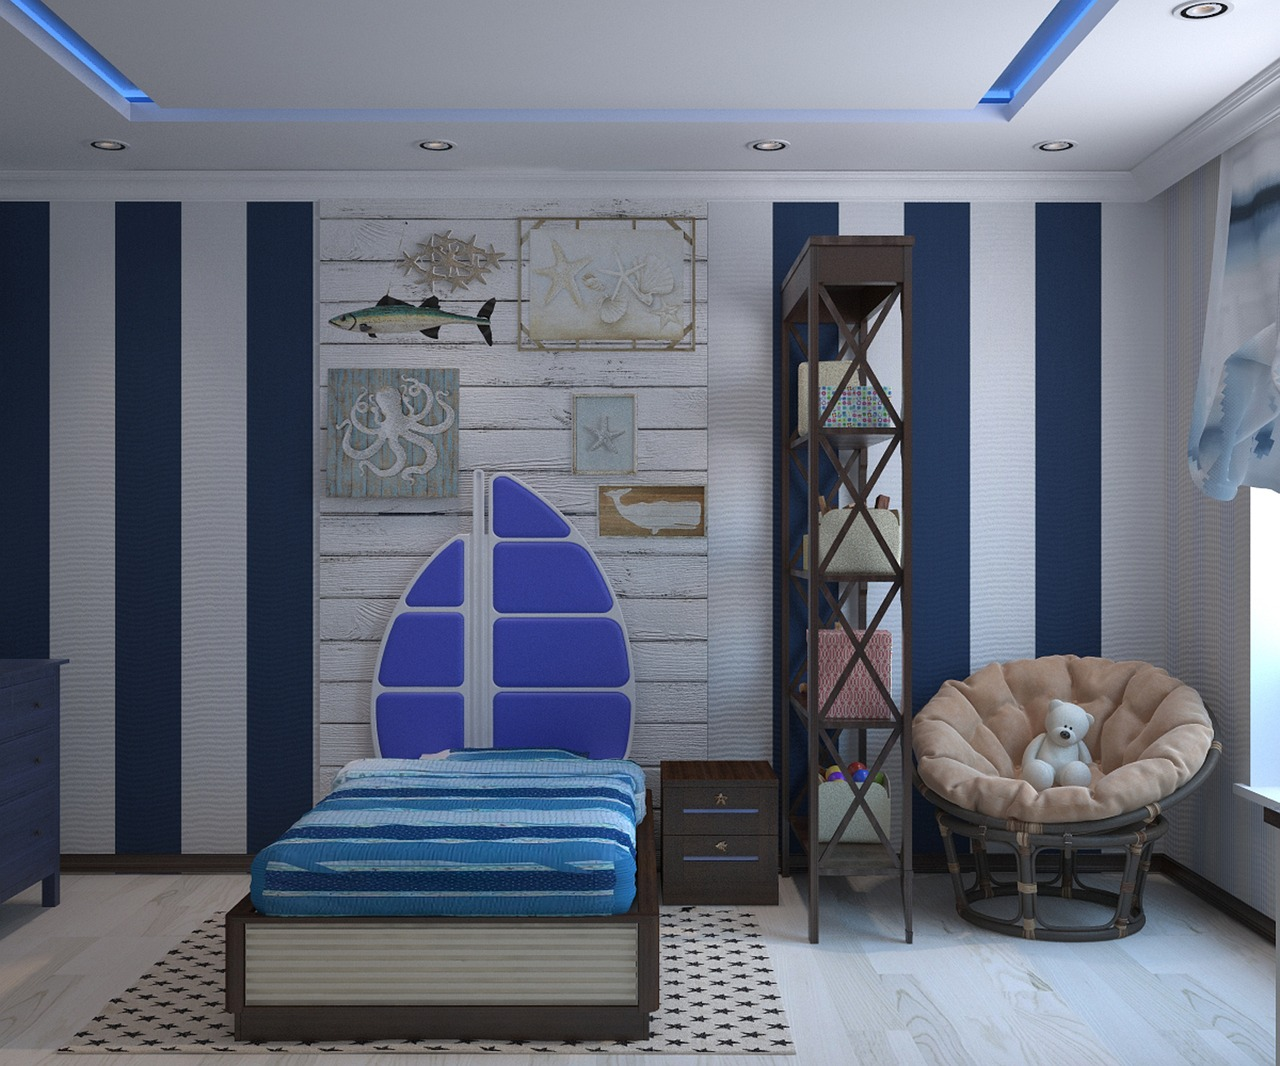 Chic Kids' Bedroom: Keep It Healthy, Safe and Organized